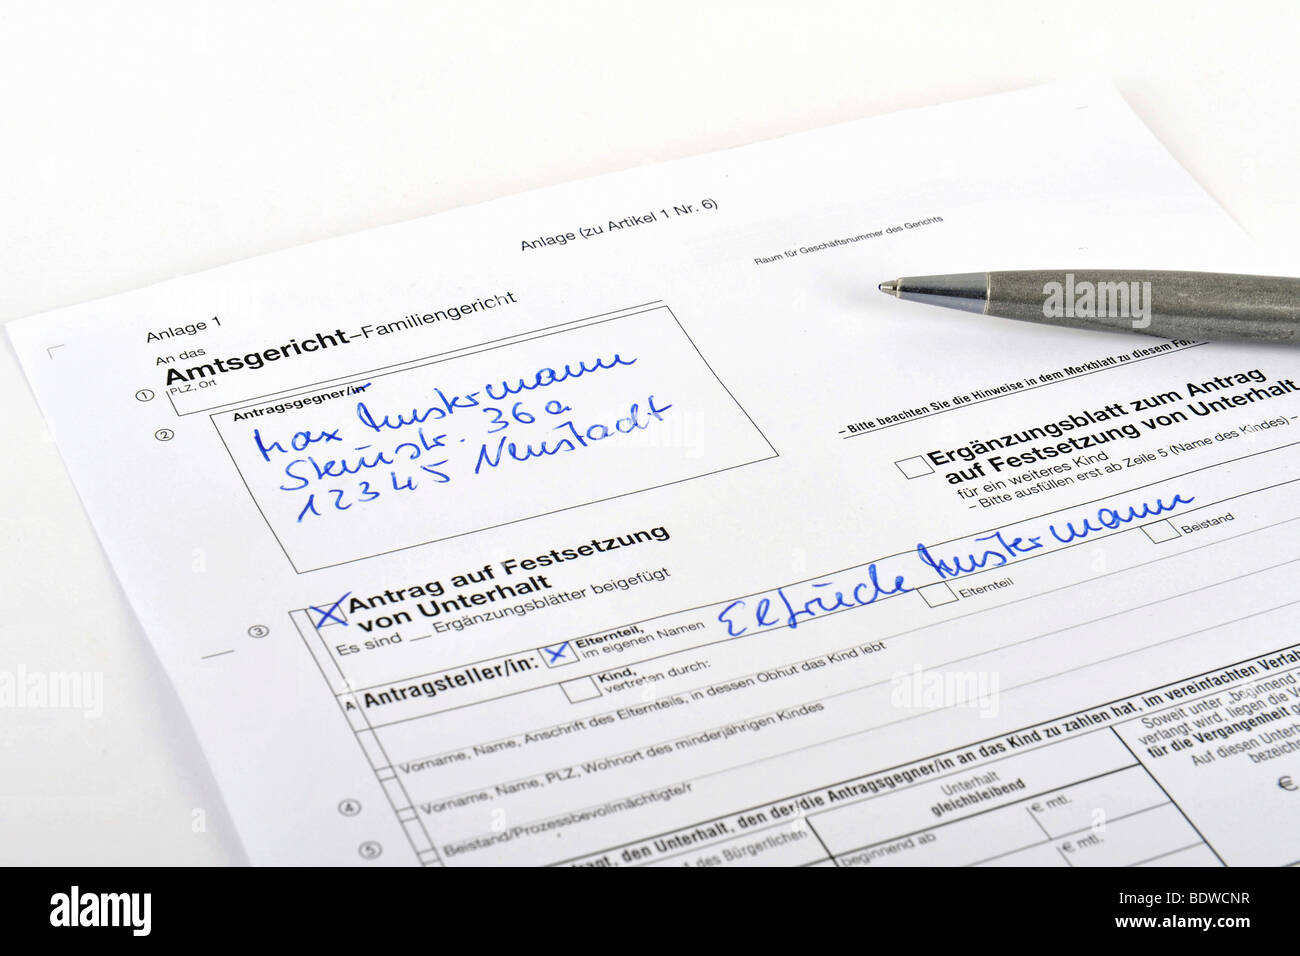 Application form for alimony at the district court Stock Photo